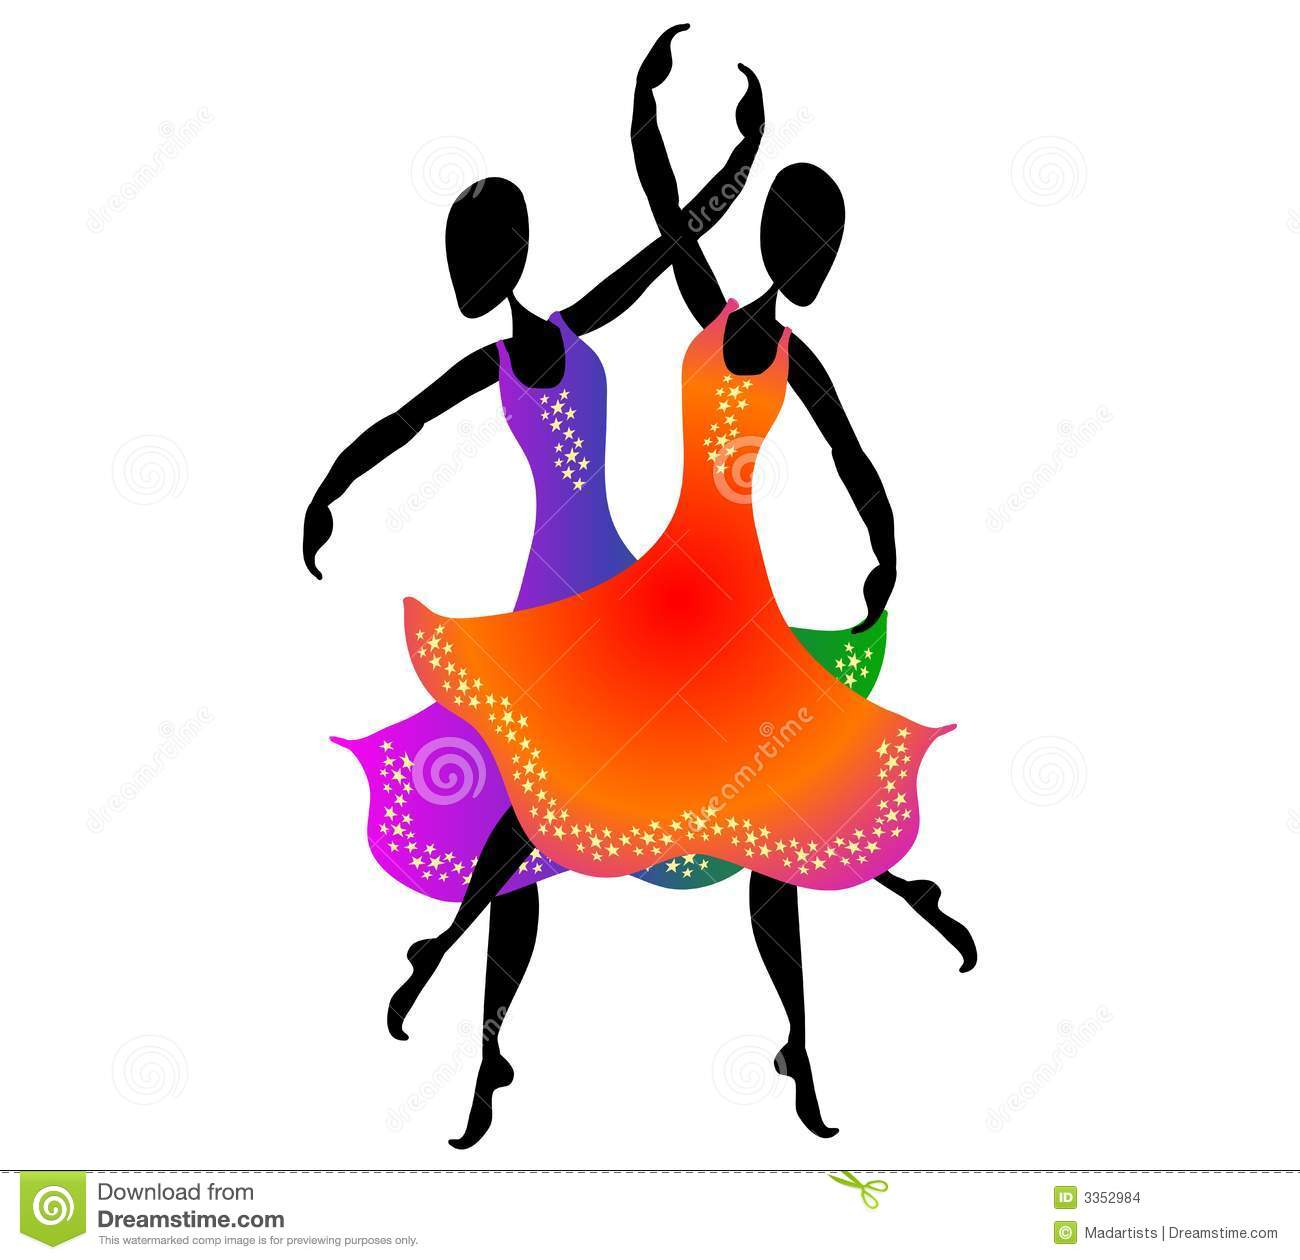 hight resolution of 1300x1260 dancing images clip art many interesting cliparts